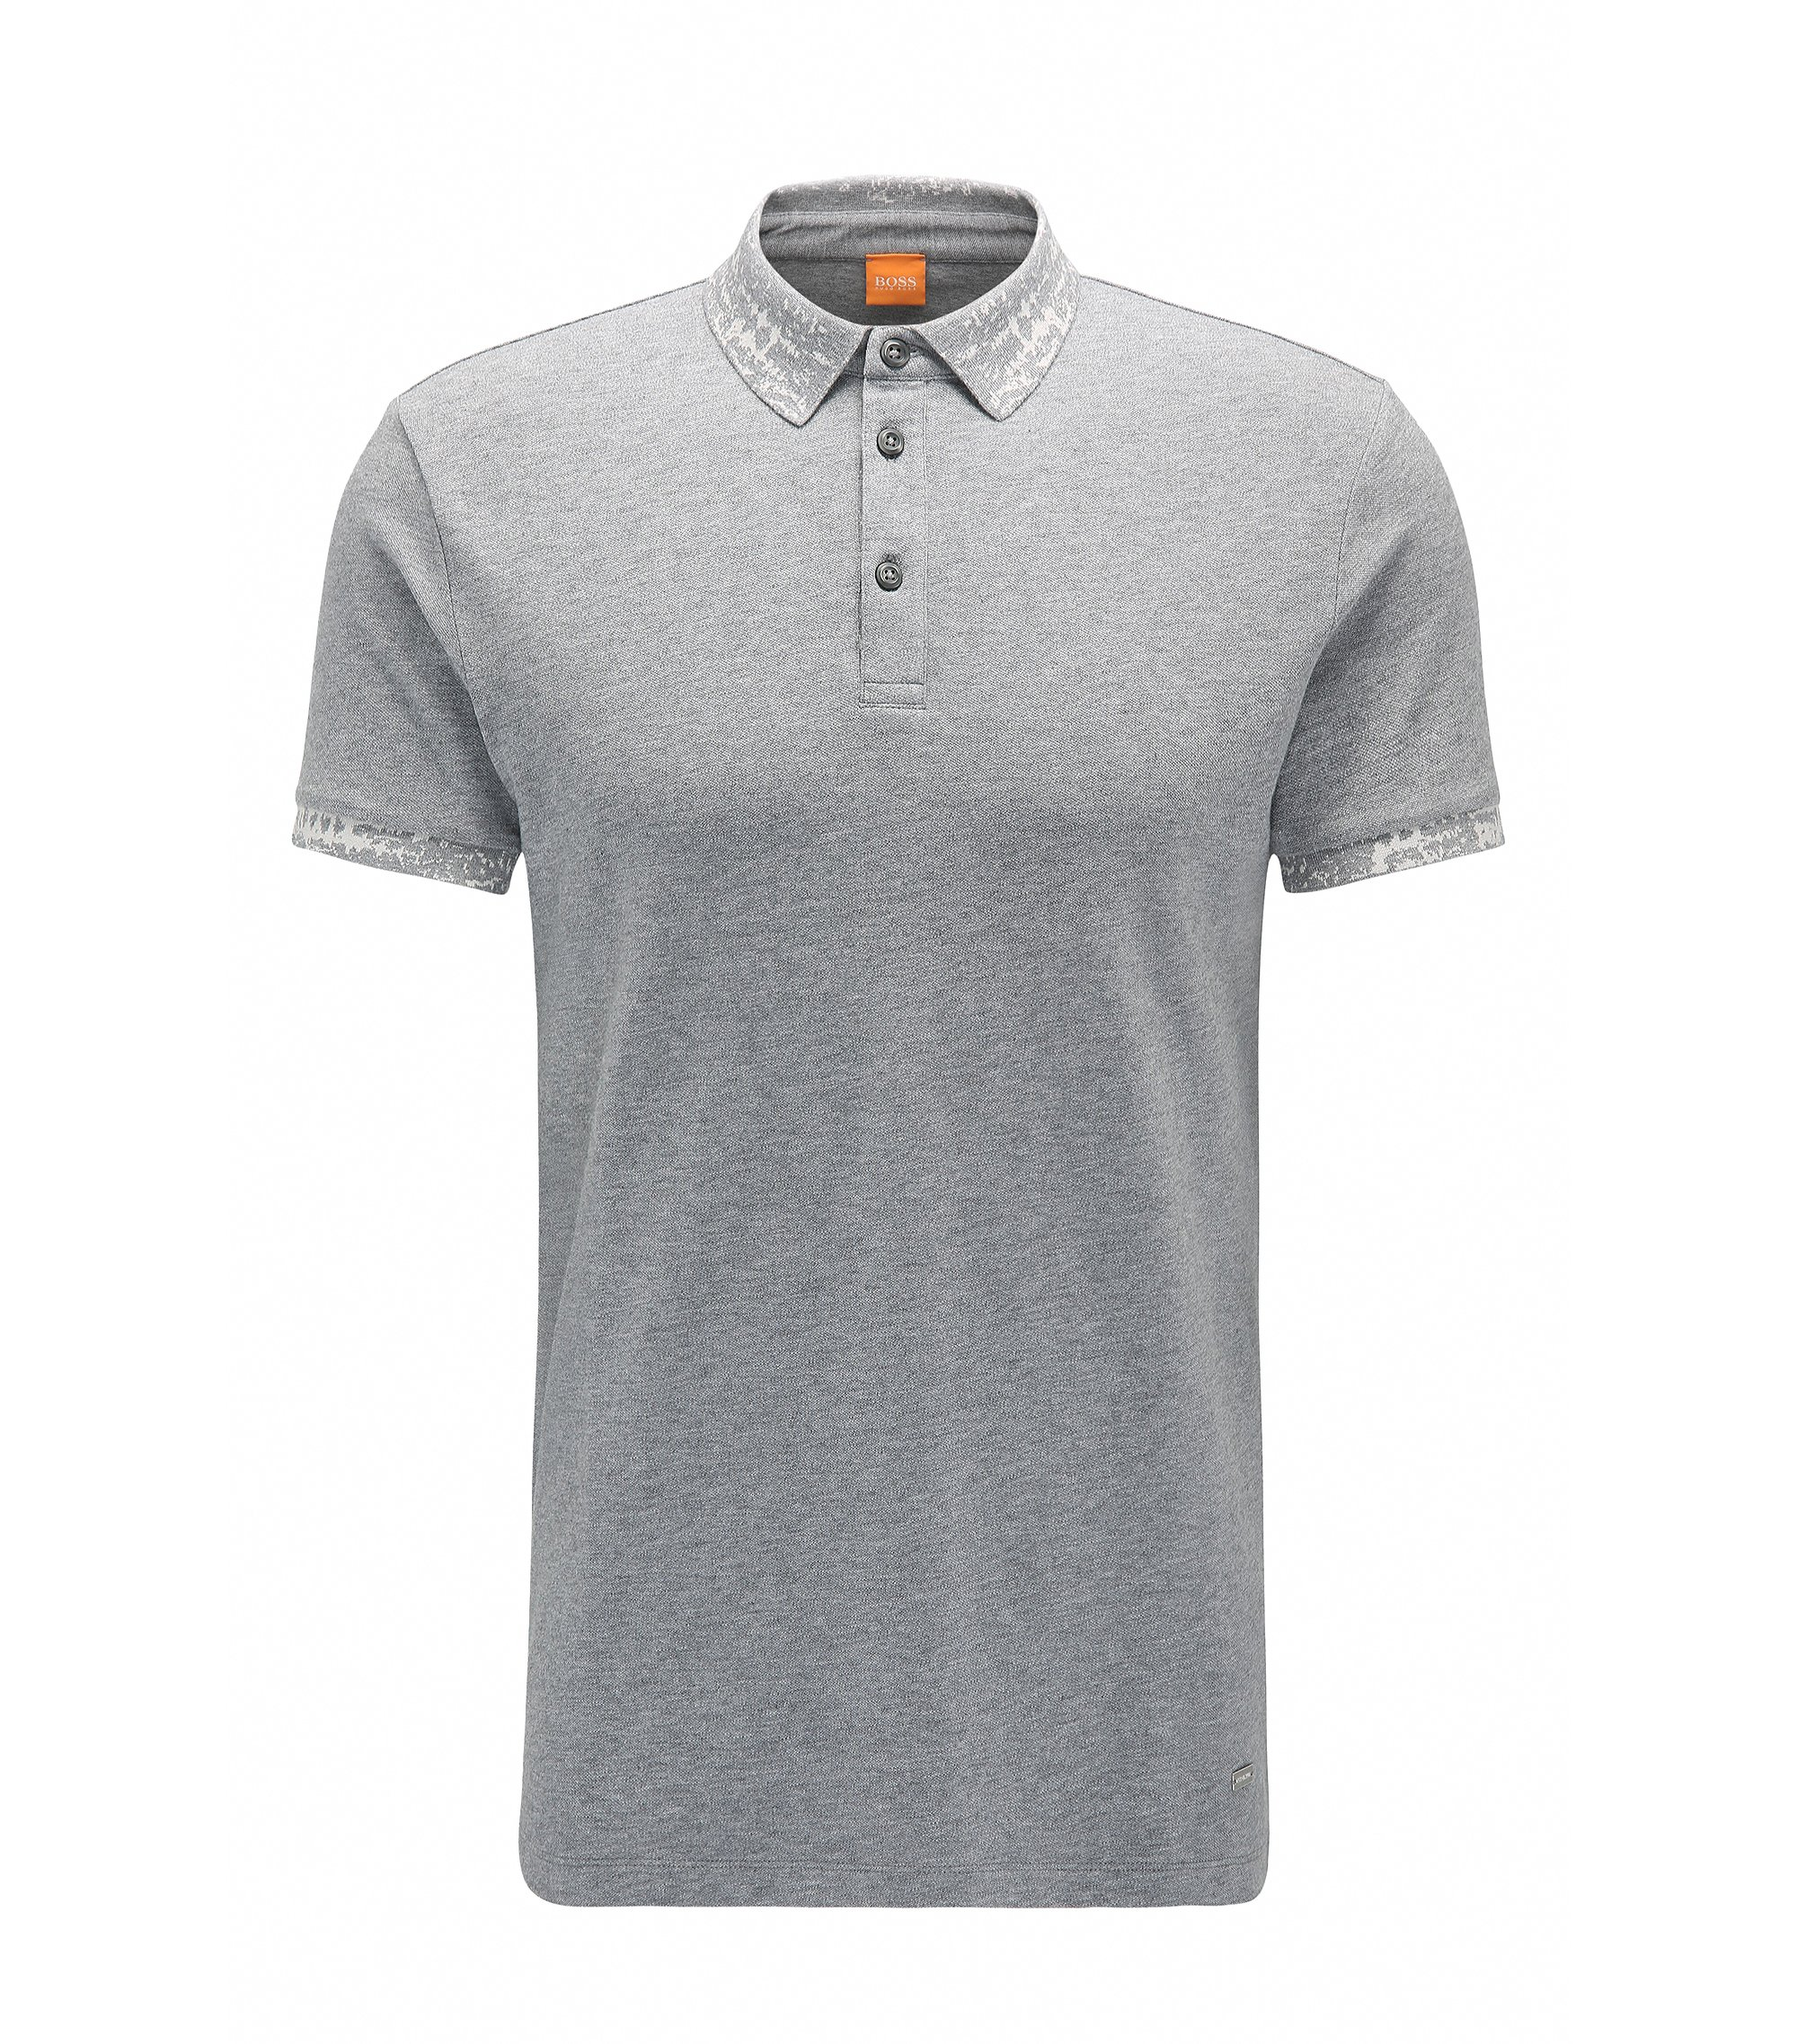 Regular-Fit Poloshirt aus Stretch-Baumwolle, Grau